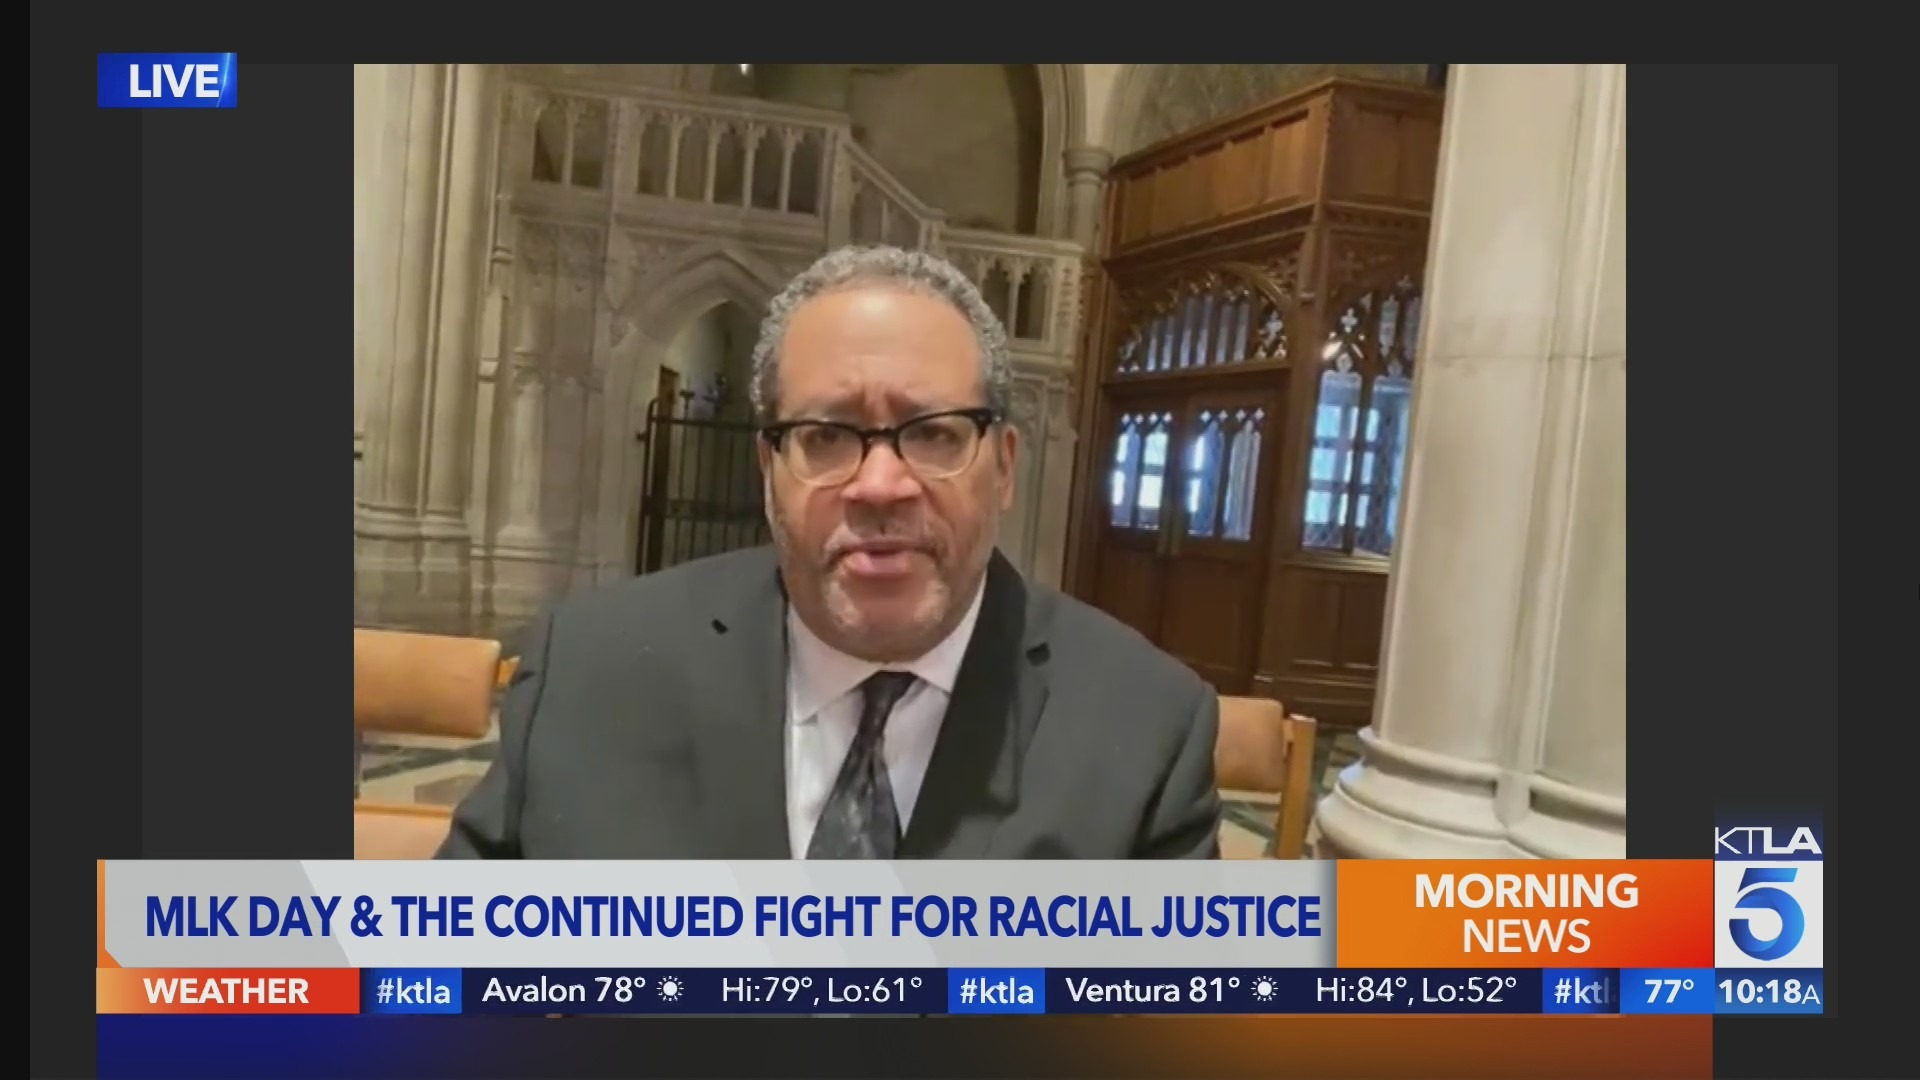 Dr. Michael Eric Dyson on MLK Day and the Continued Fight for Racial Justice